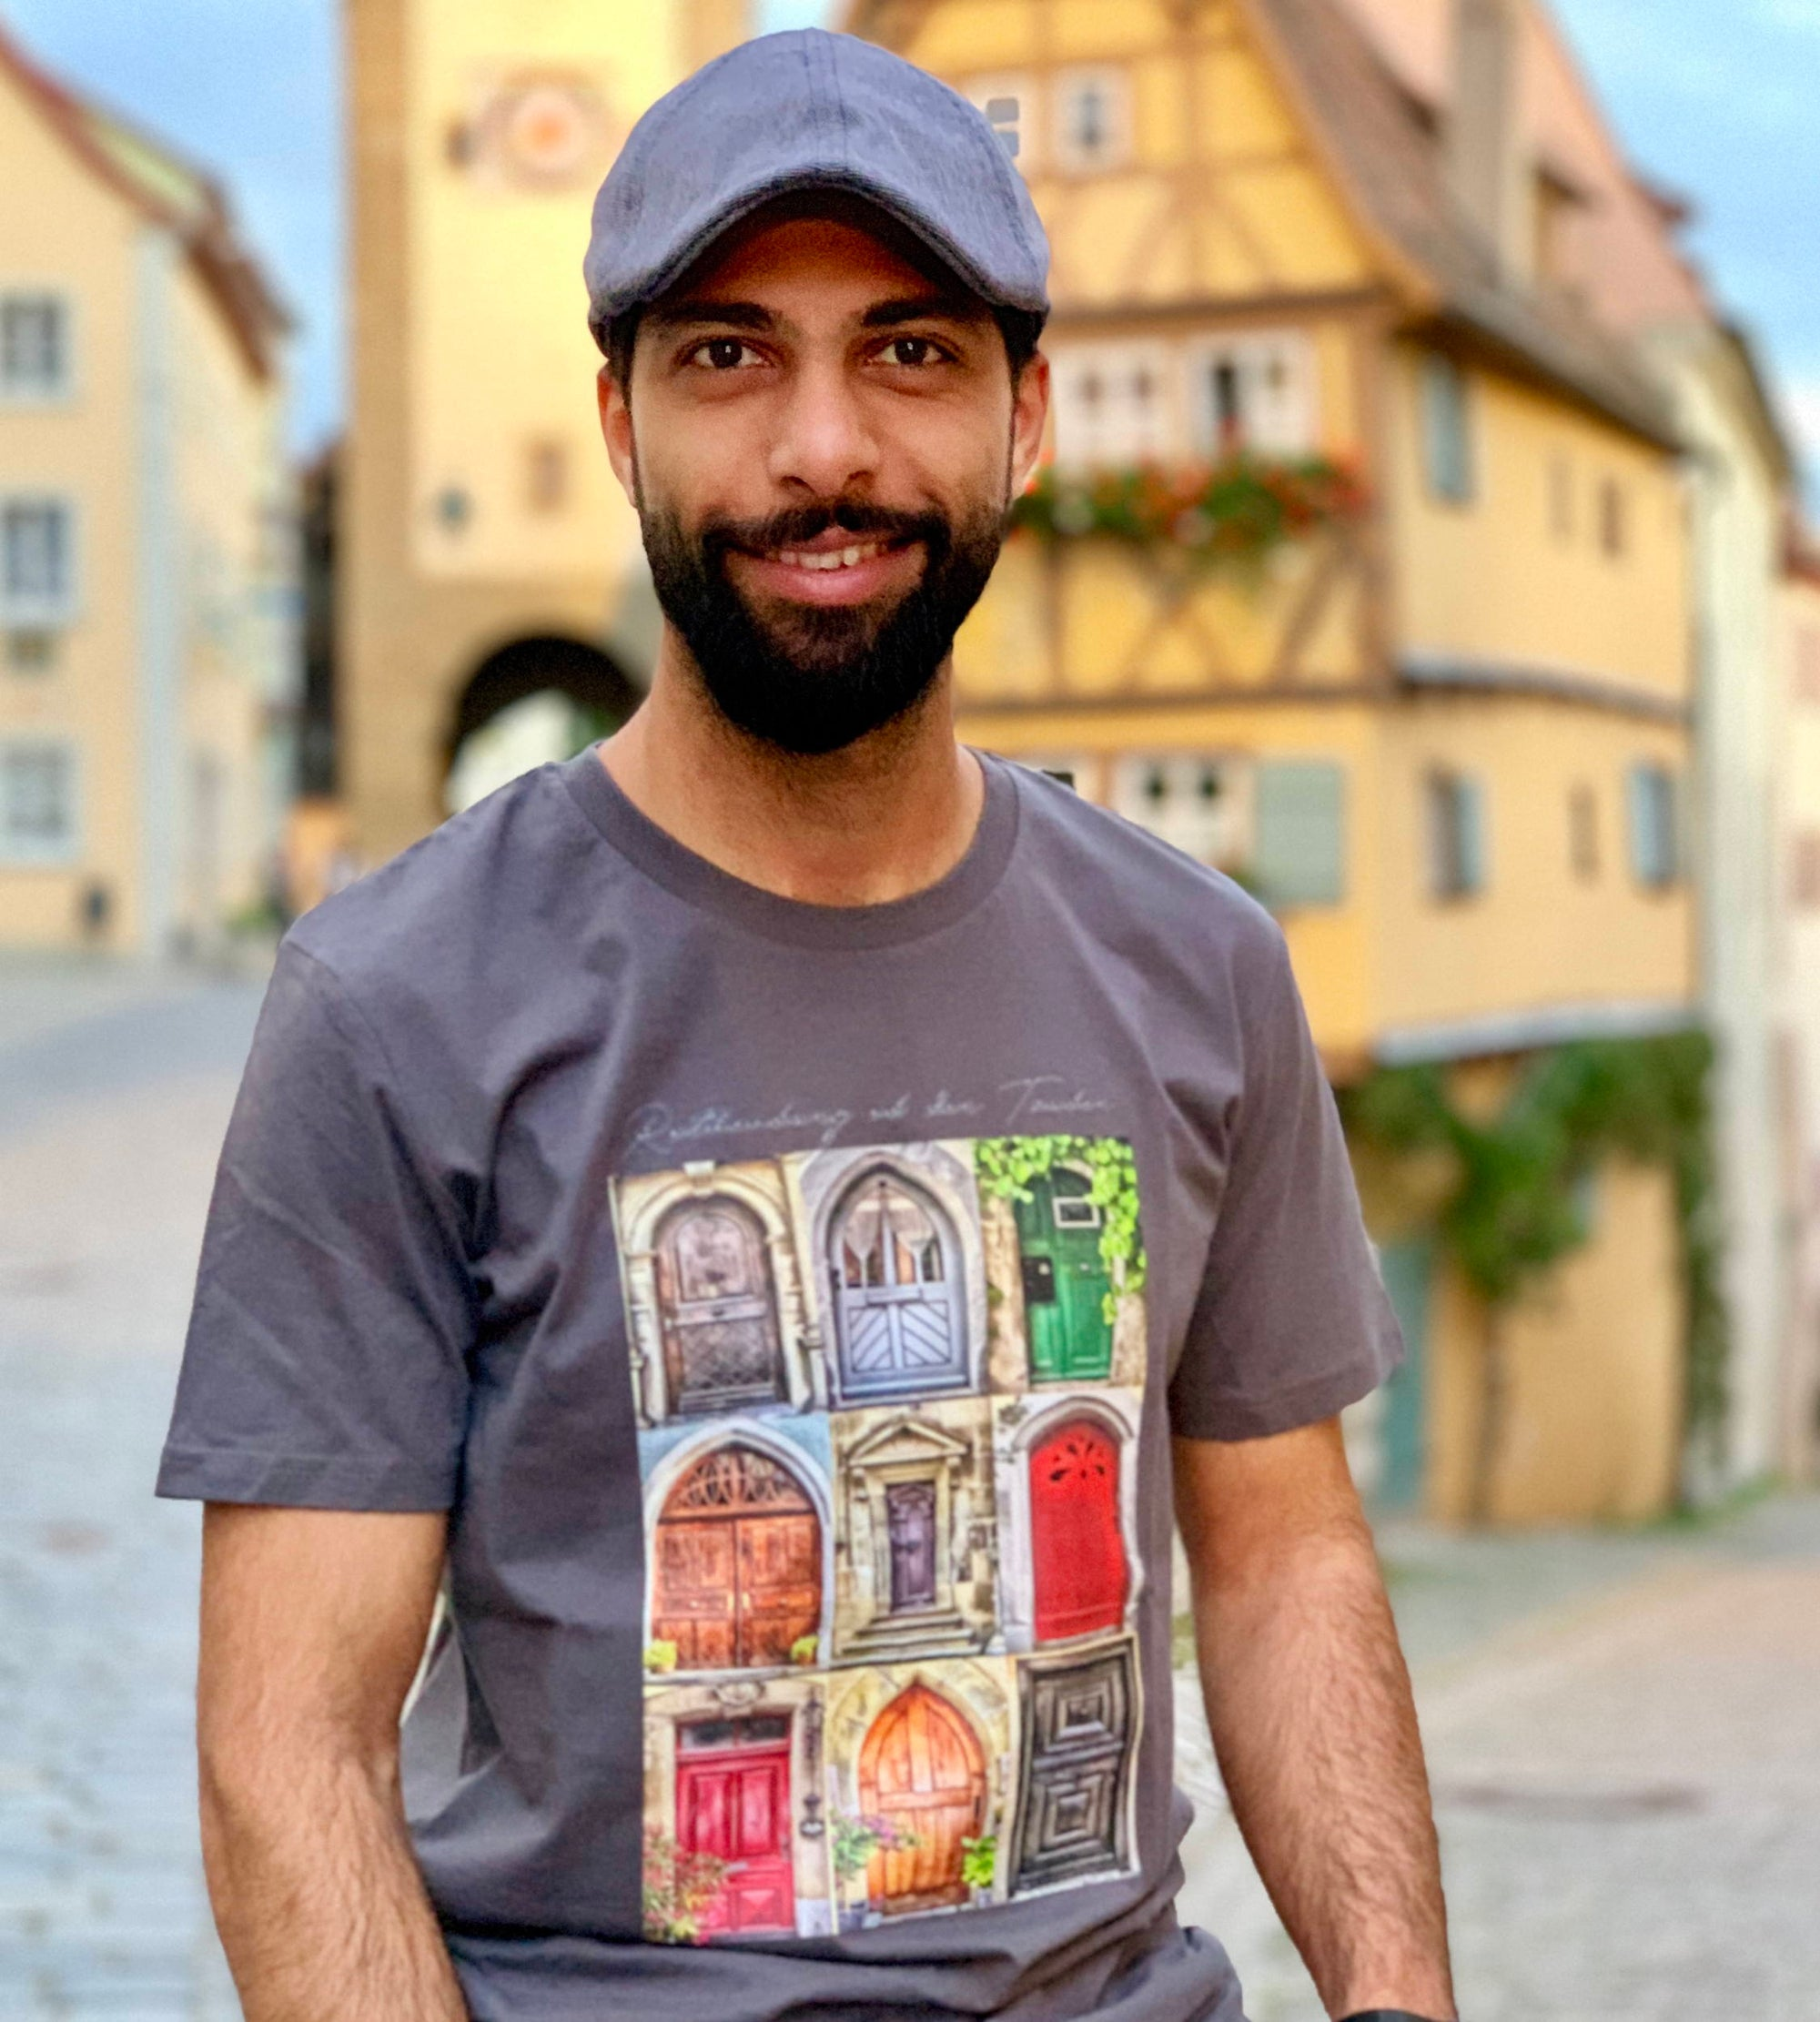 Rothenburger Türen-Shirt - am Plönlein